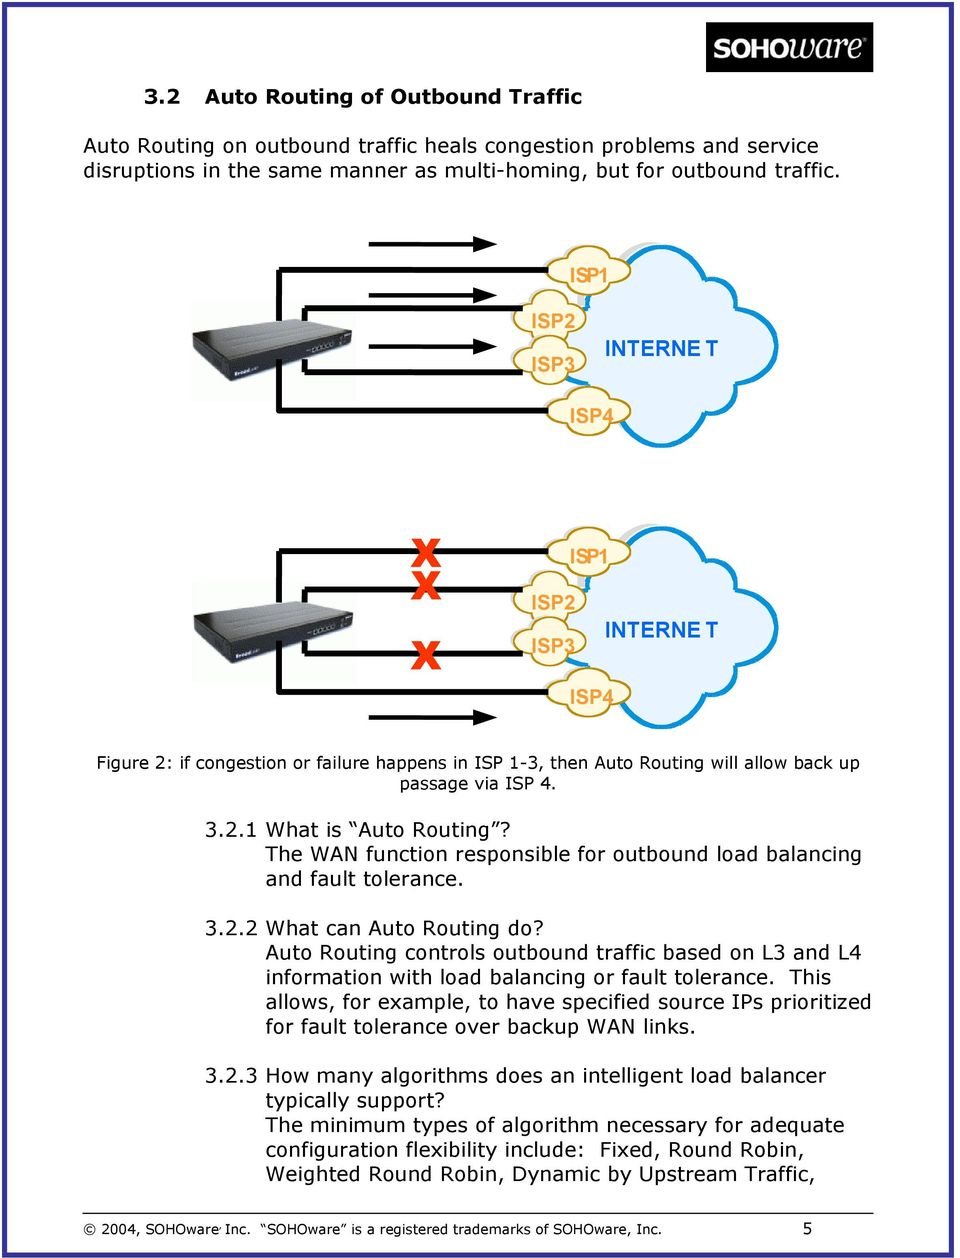 The WAN function responsible for outbound load balancing and fault tolerance. 3.2.2 What can Auto Routing do?